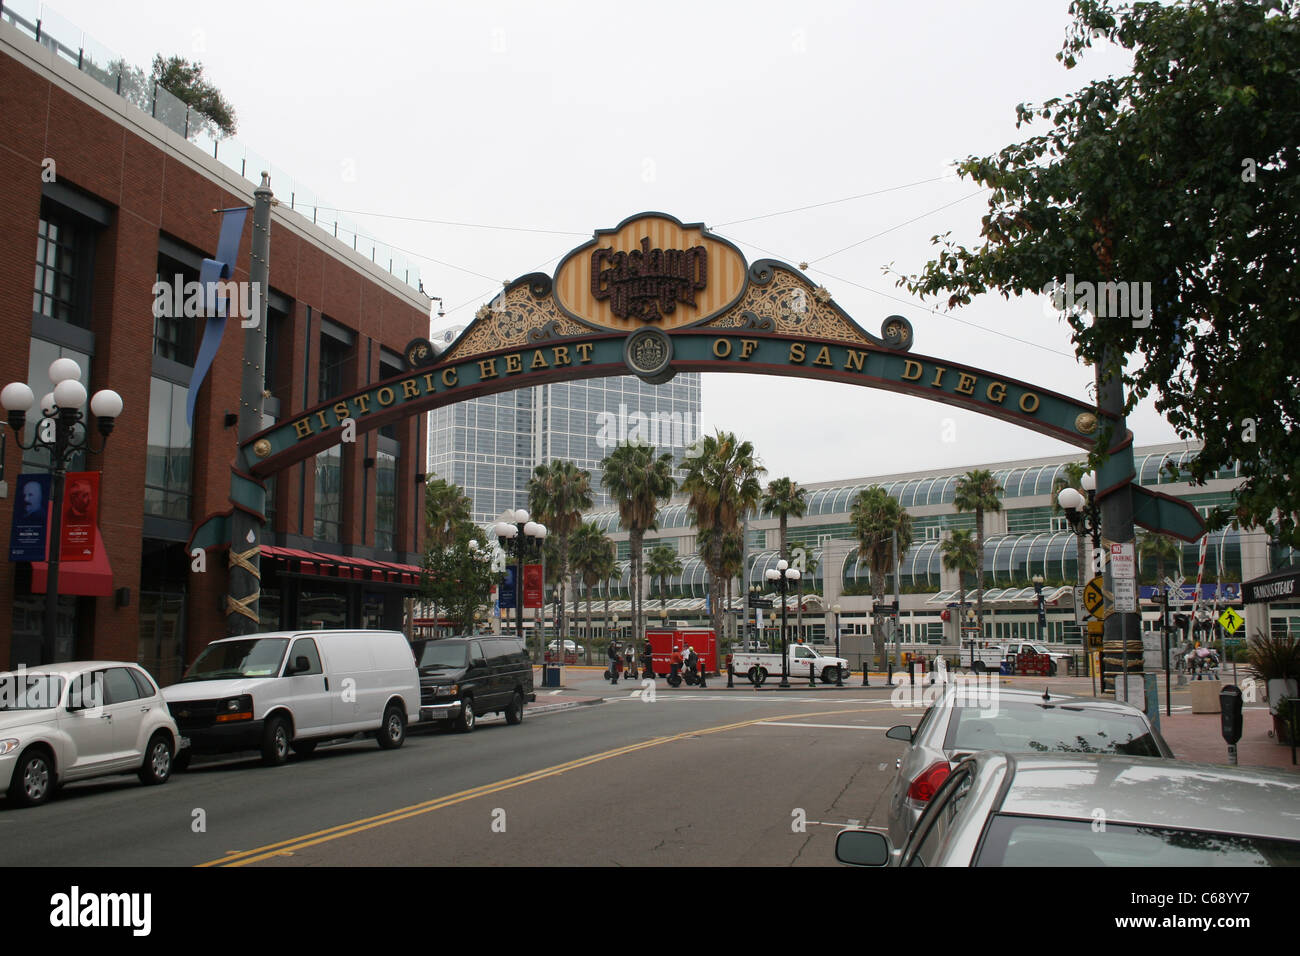 Wonderful SAN DIEGO CALIFORNIA USA GASLIGHT DISTRICT Great Pictures